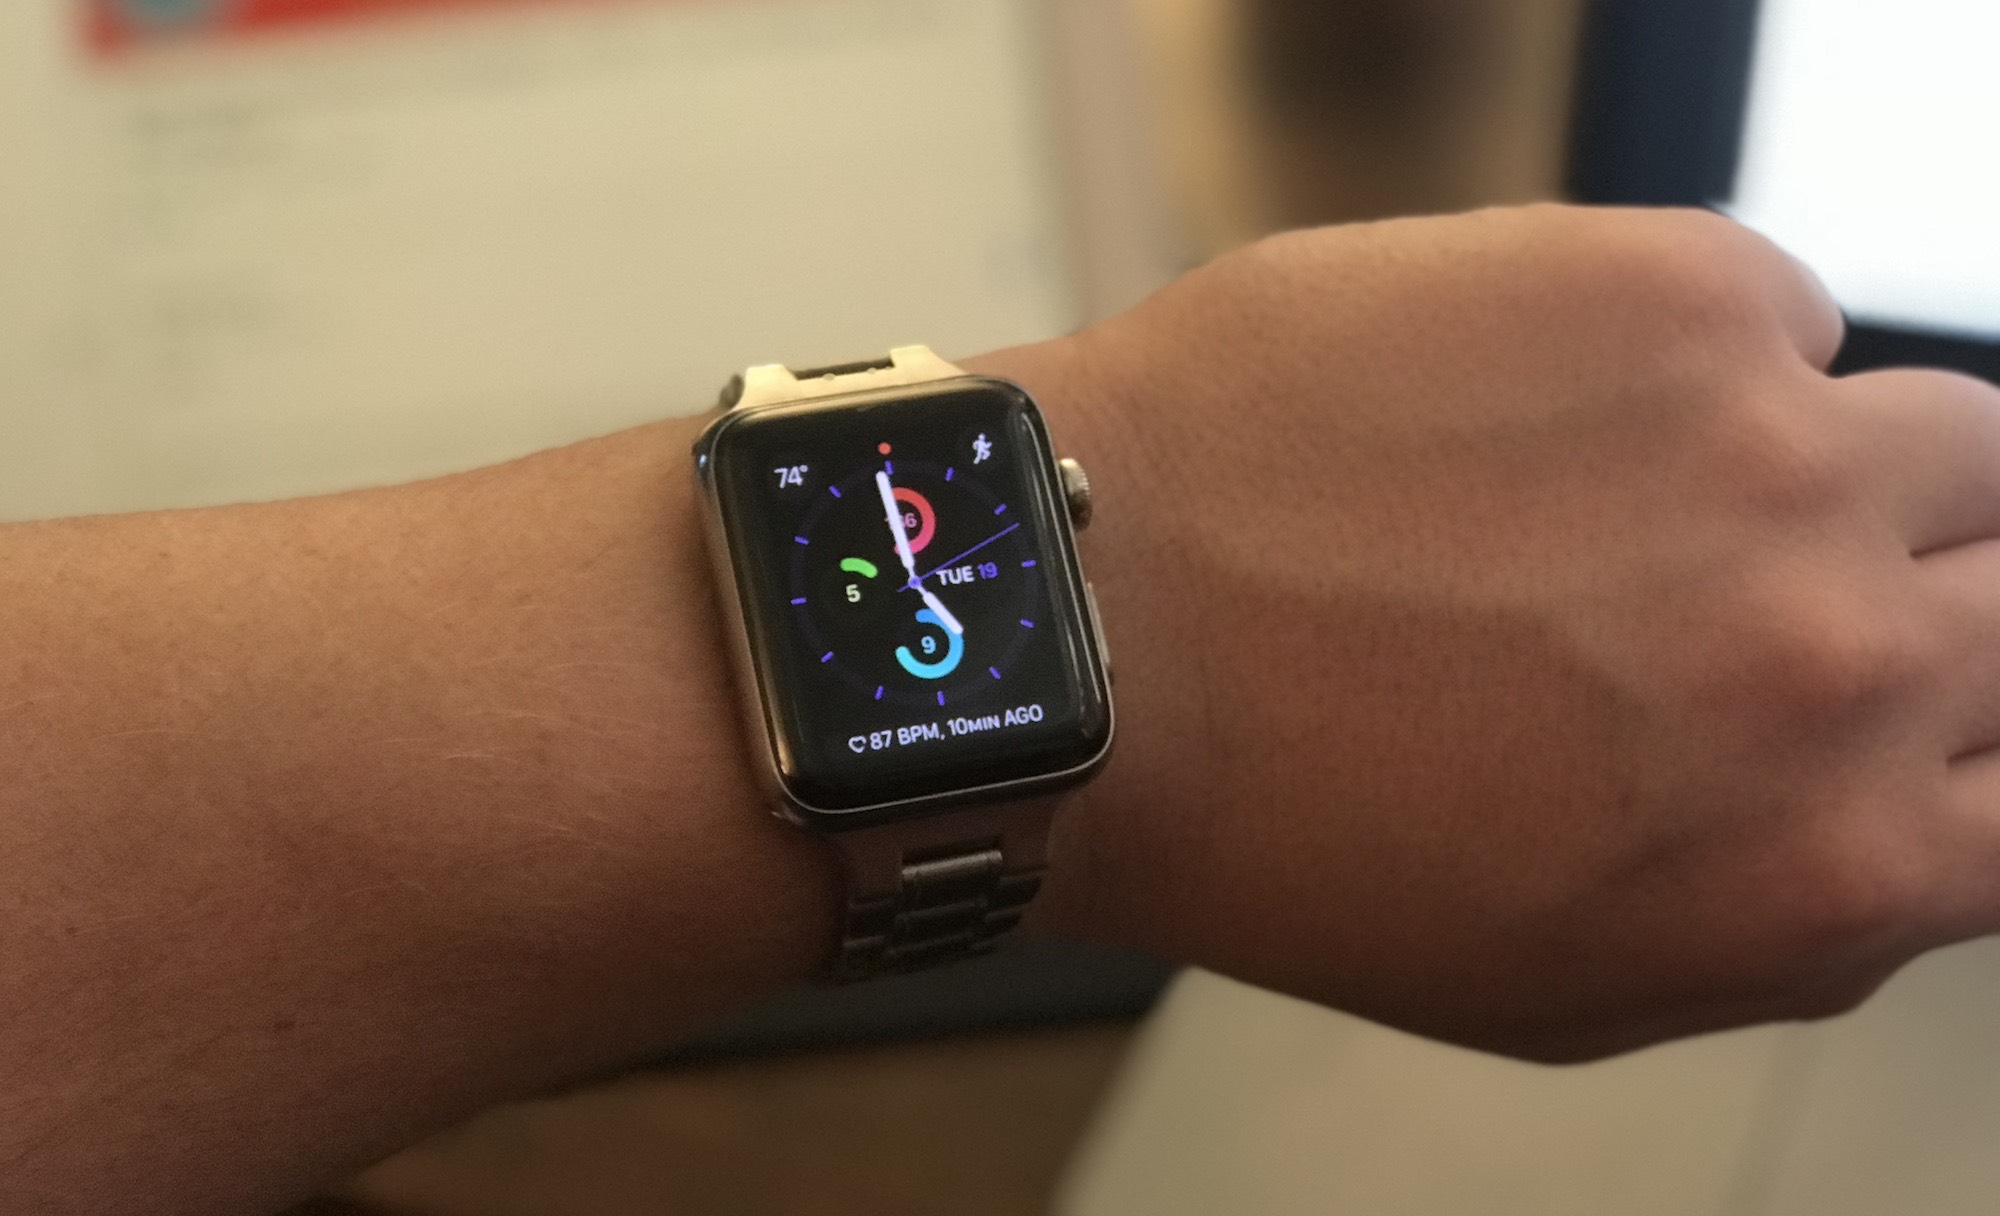 Apple Watch complications watch face